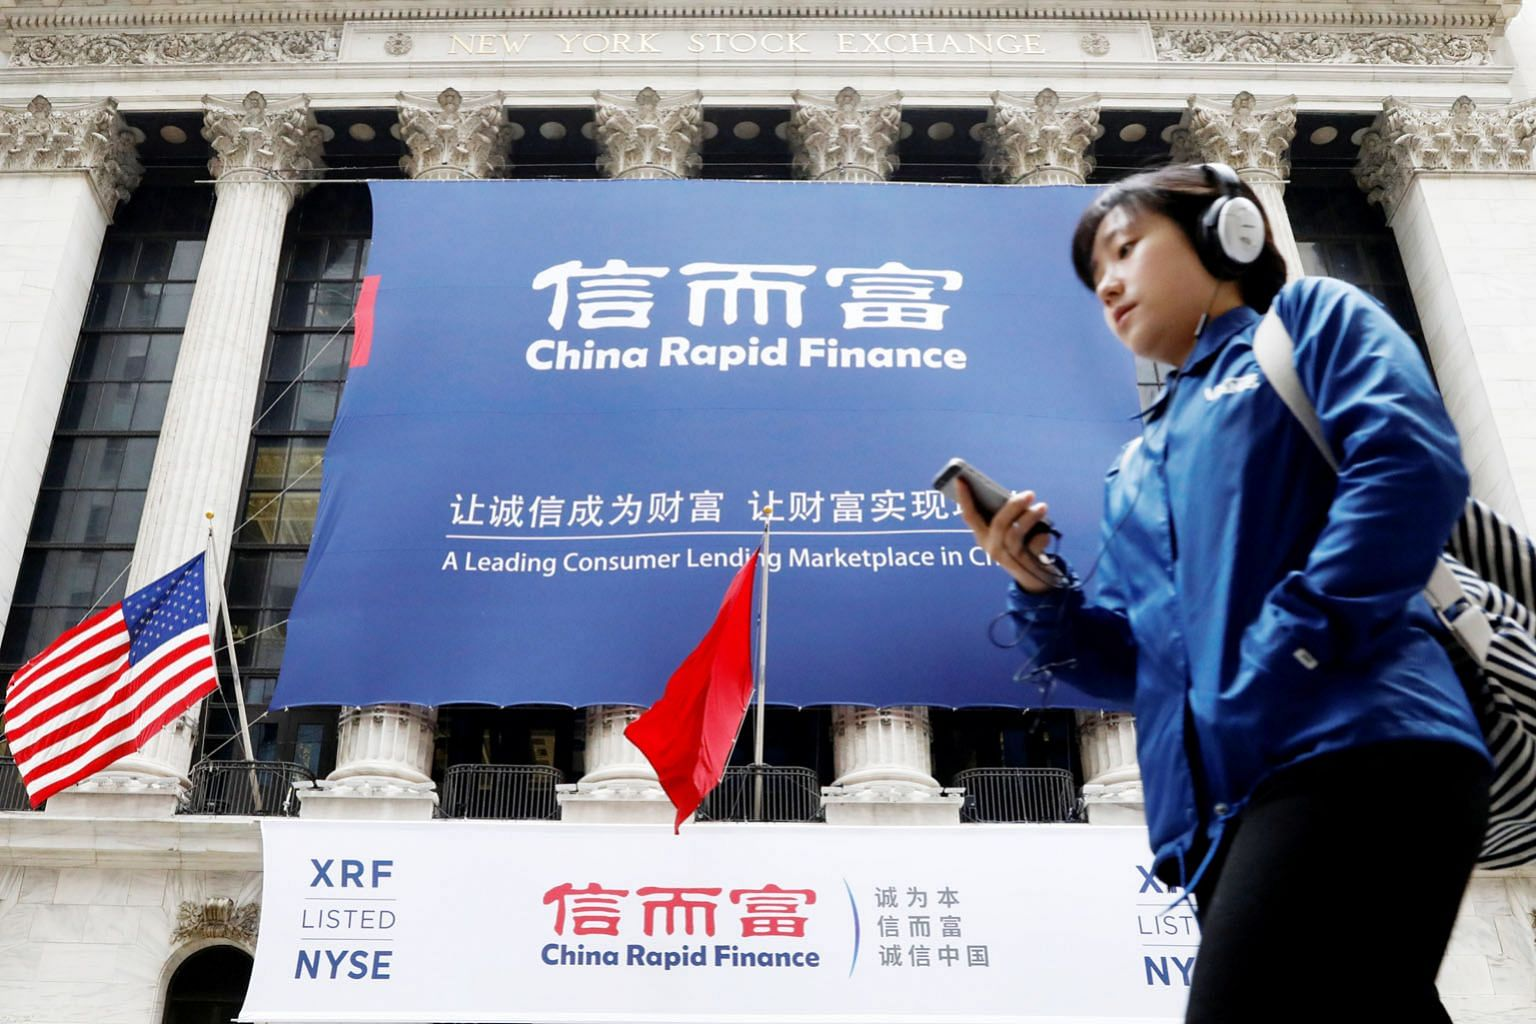 A banner for China Rapid Finance on the NYSE's facade, celebrating the mainland firm's IPO in May.